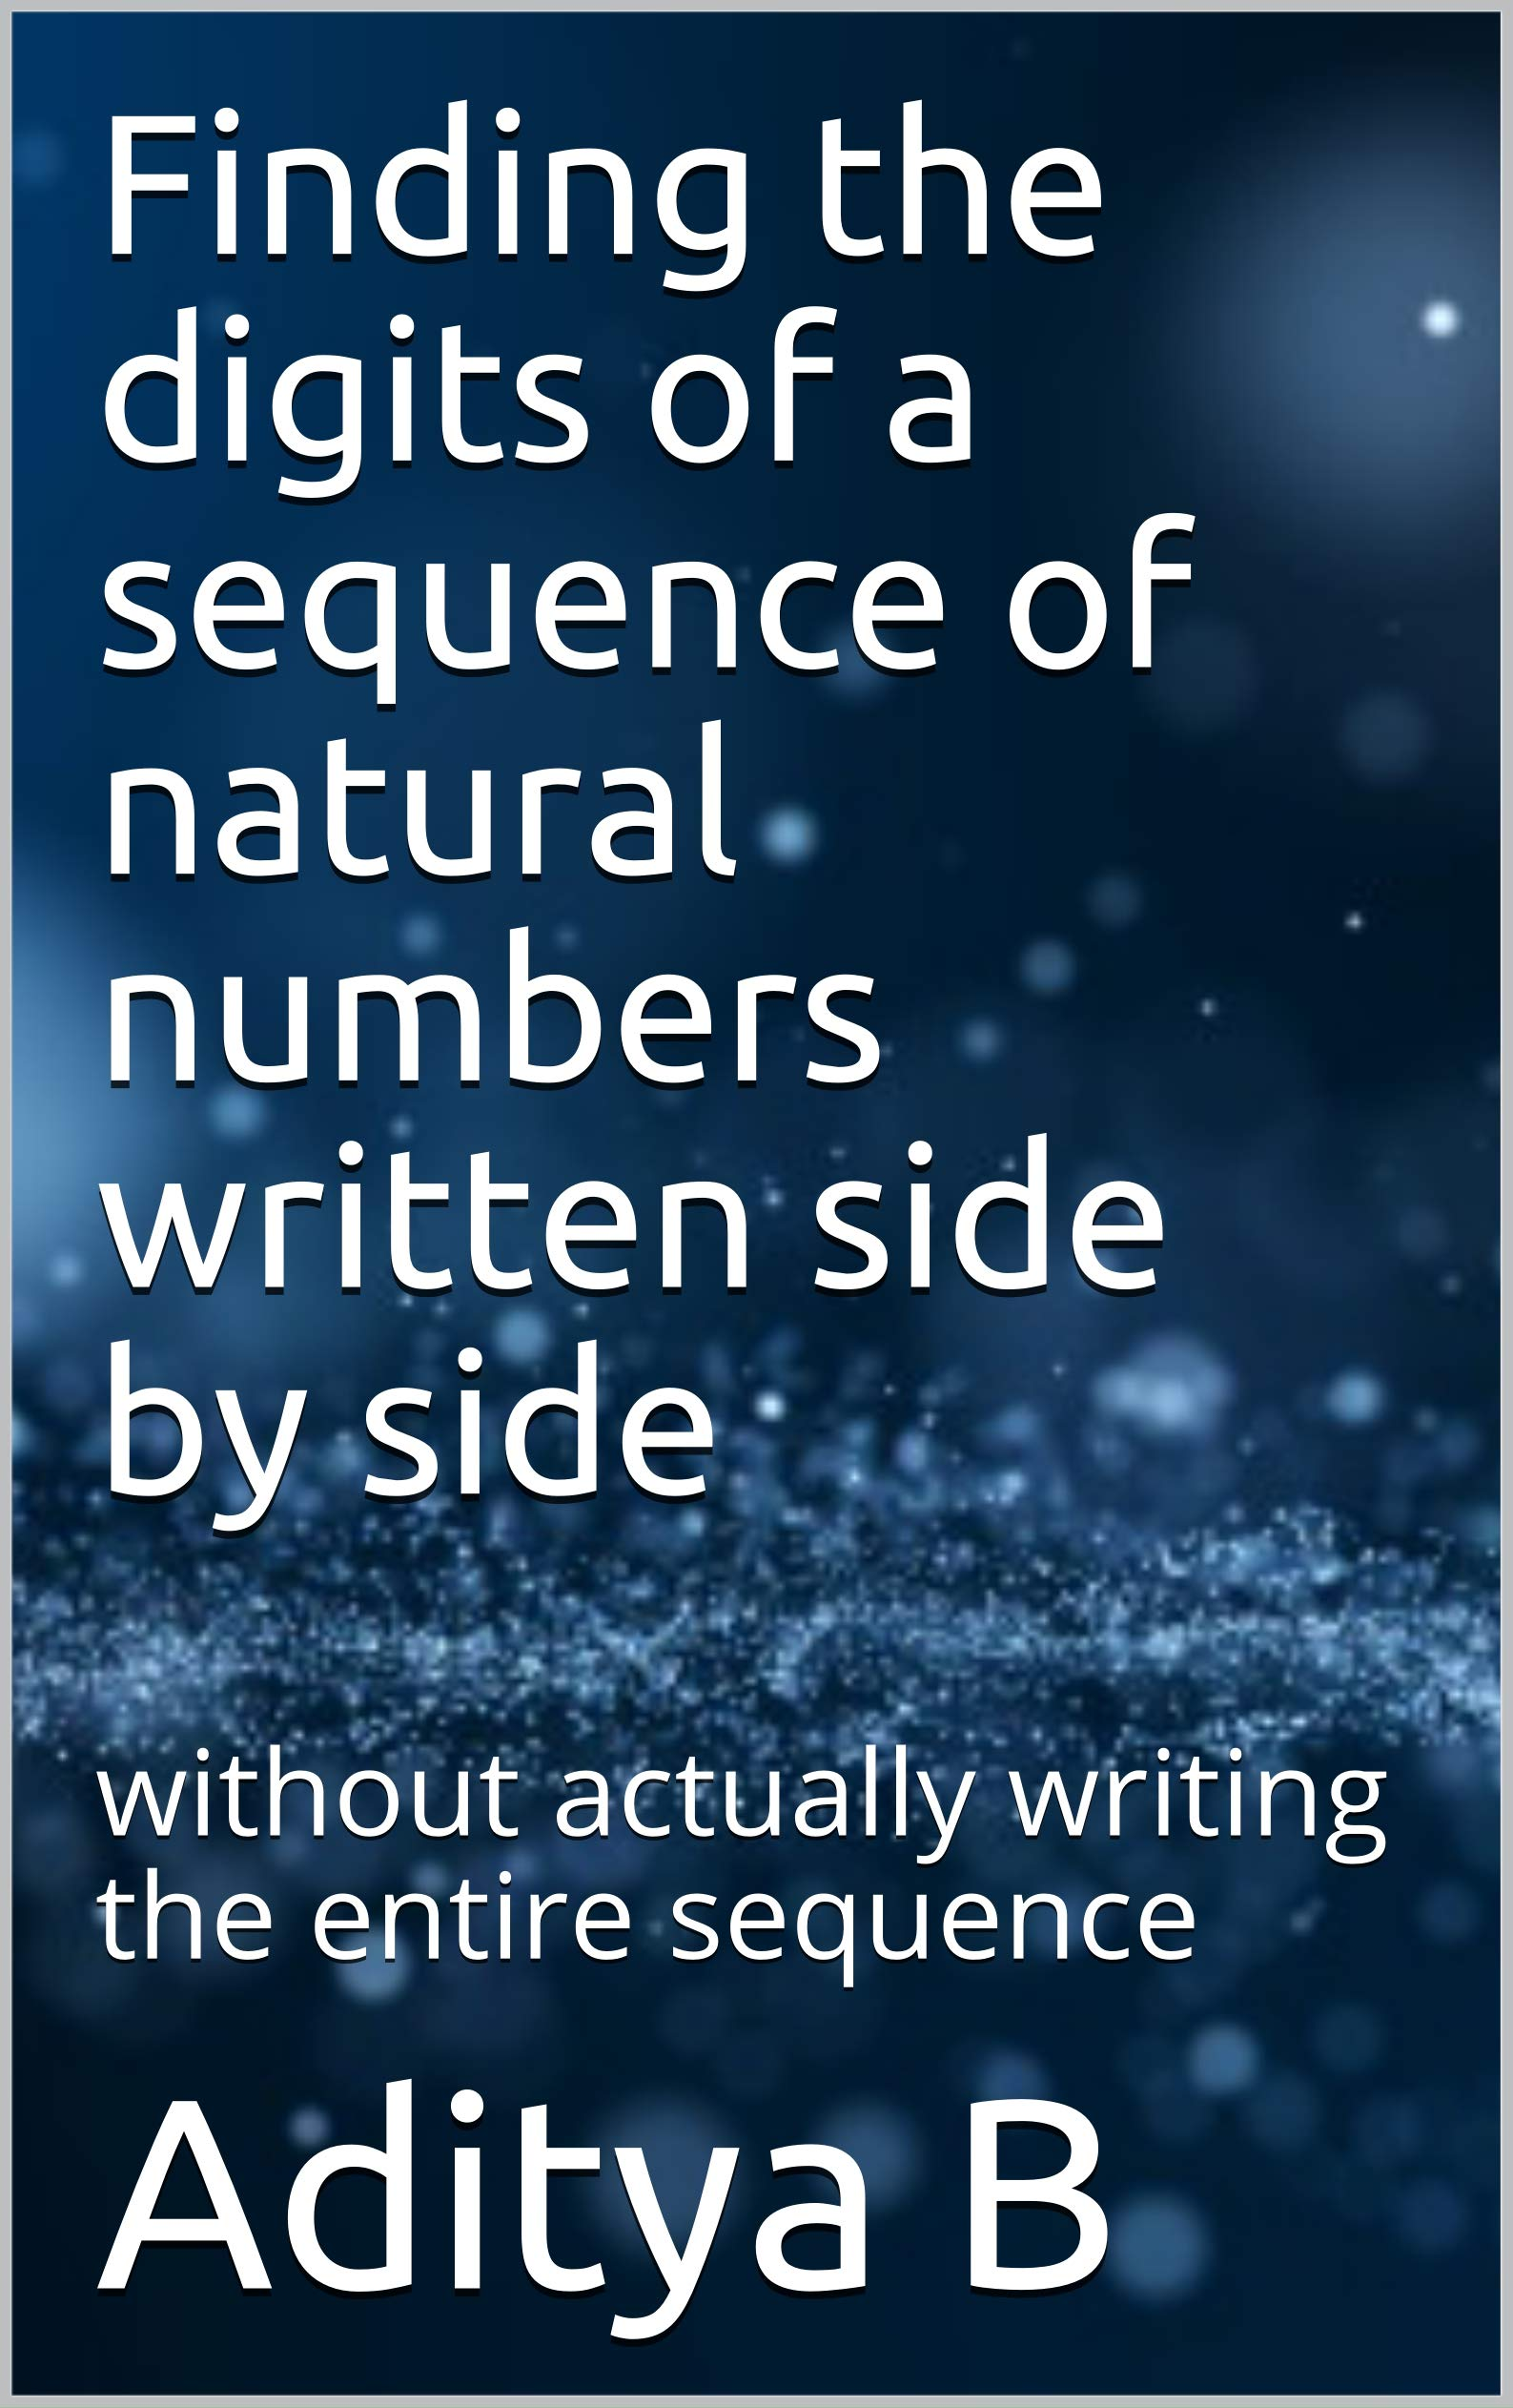 Finding the digits of a sequence of natural numbers written side by side: without actually writing the entire sequence